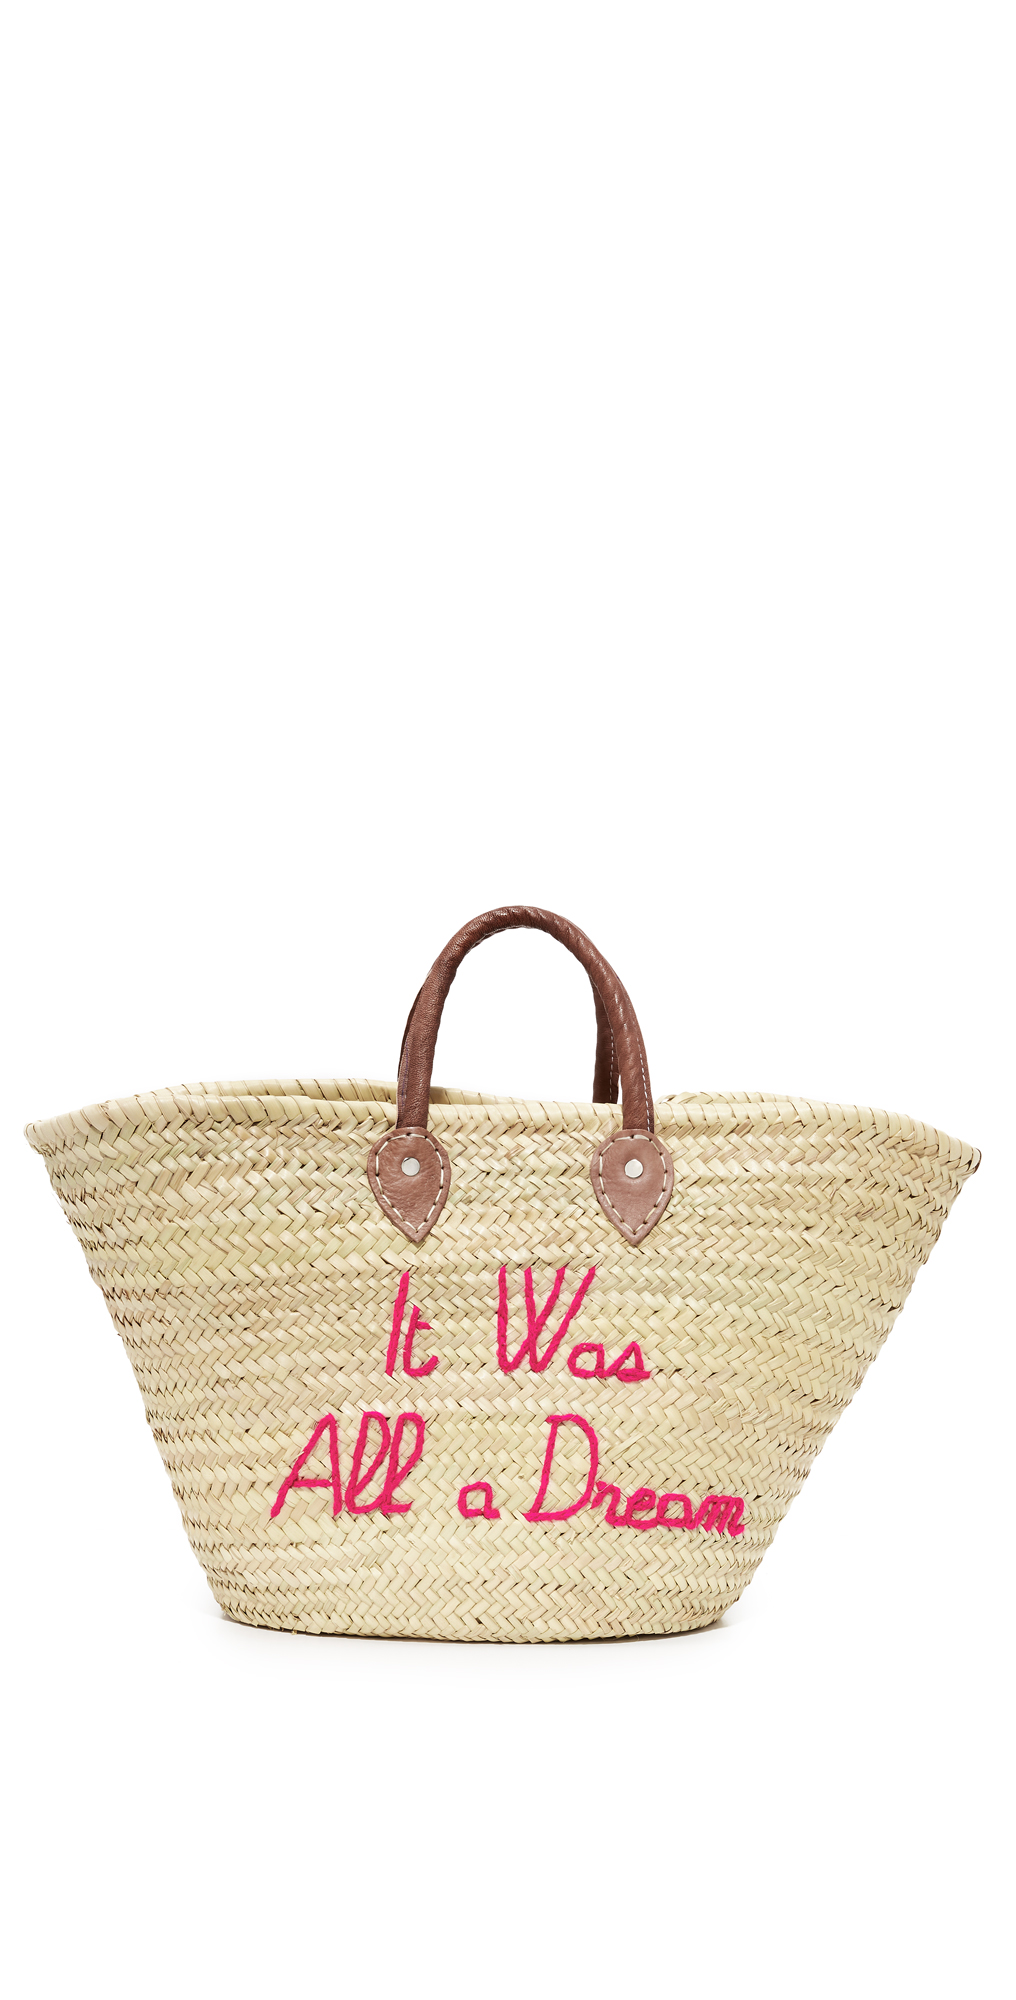 It Was All a Dream Tote Poolside Bags